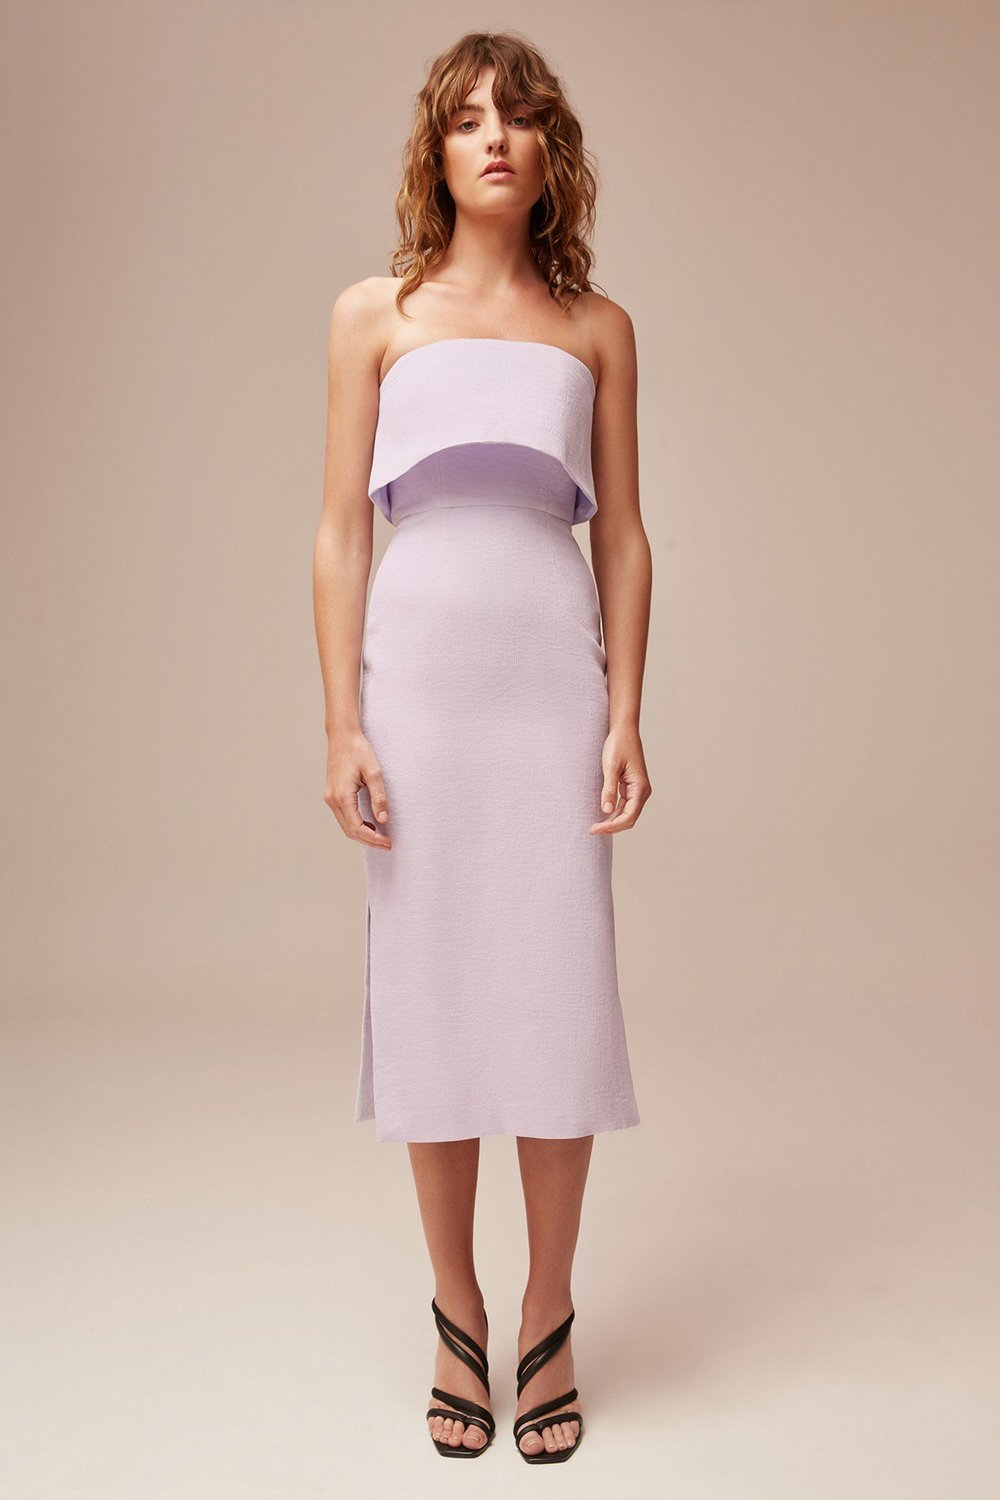 C/MEO Collective Love Like This Dress